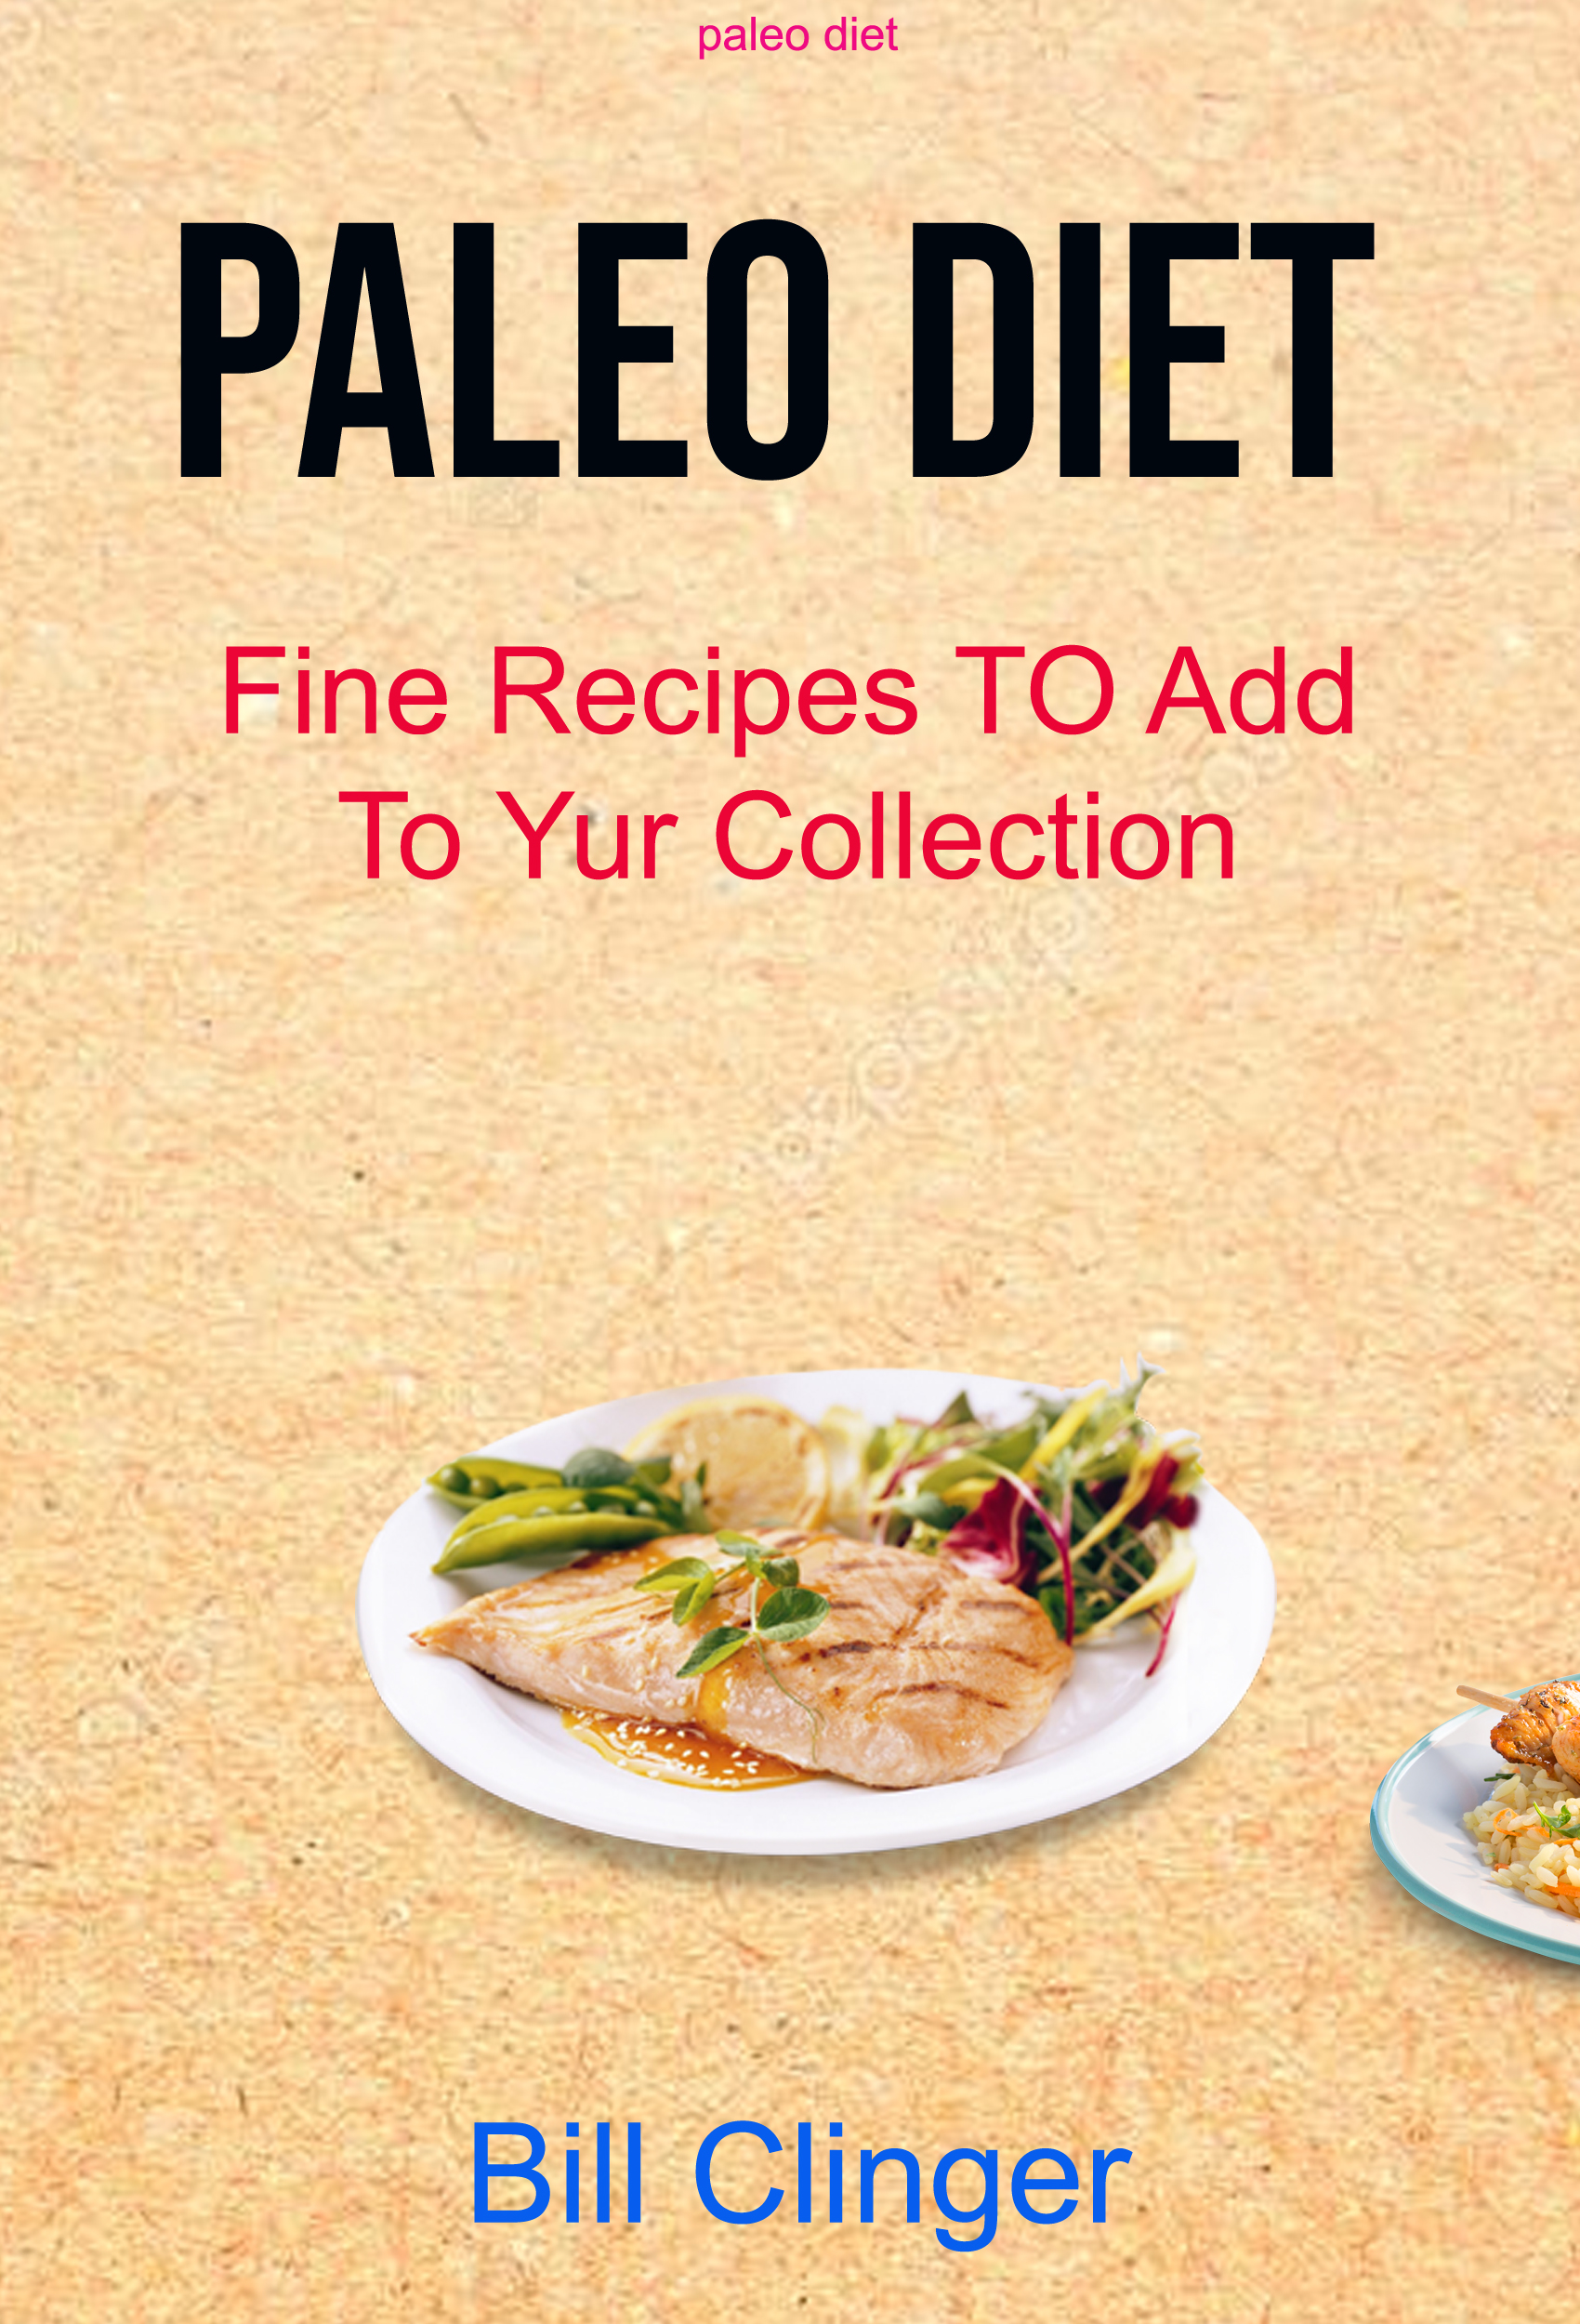 Paleo diet: fine recipes to add to yur collection